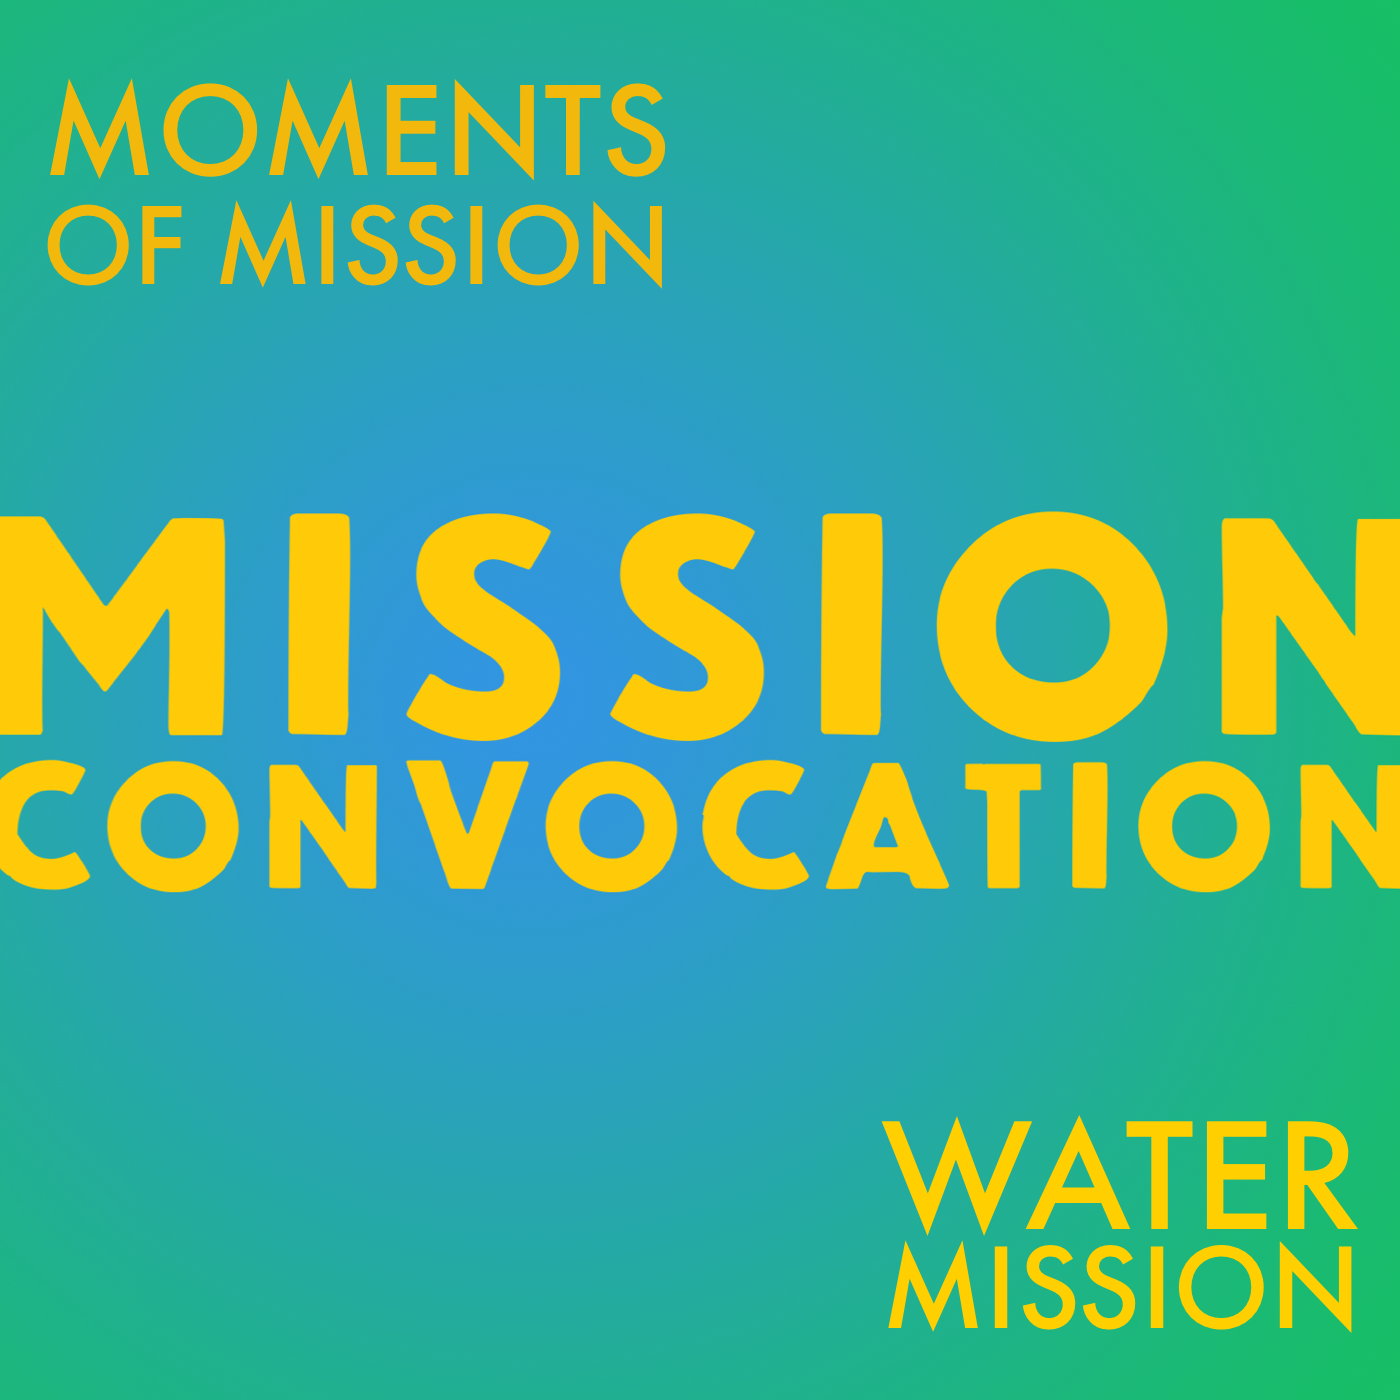 Moments of Mission – Water Mission